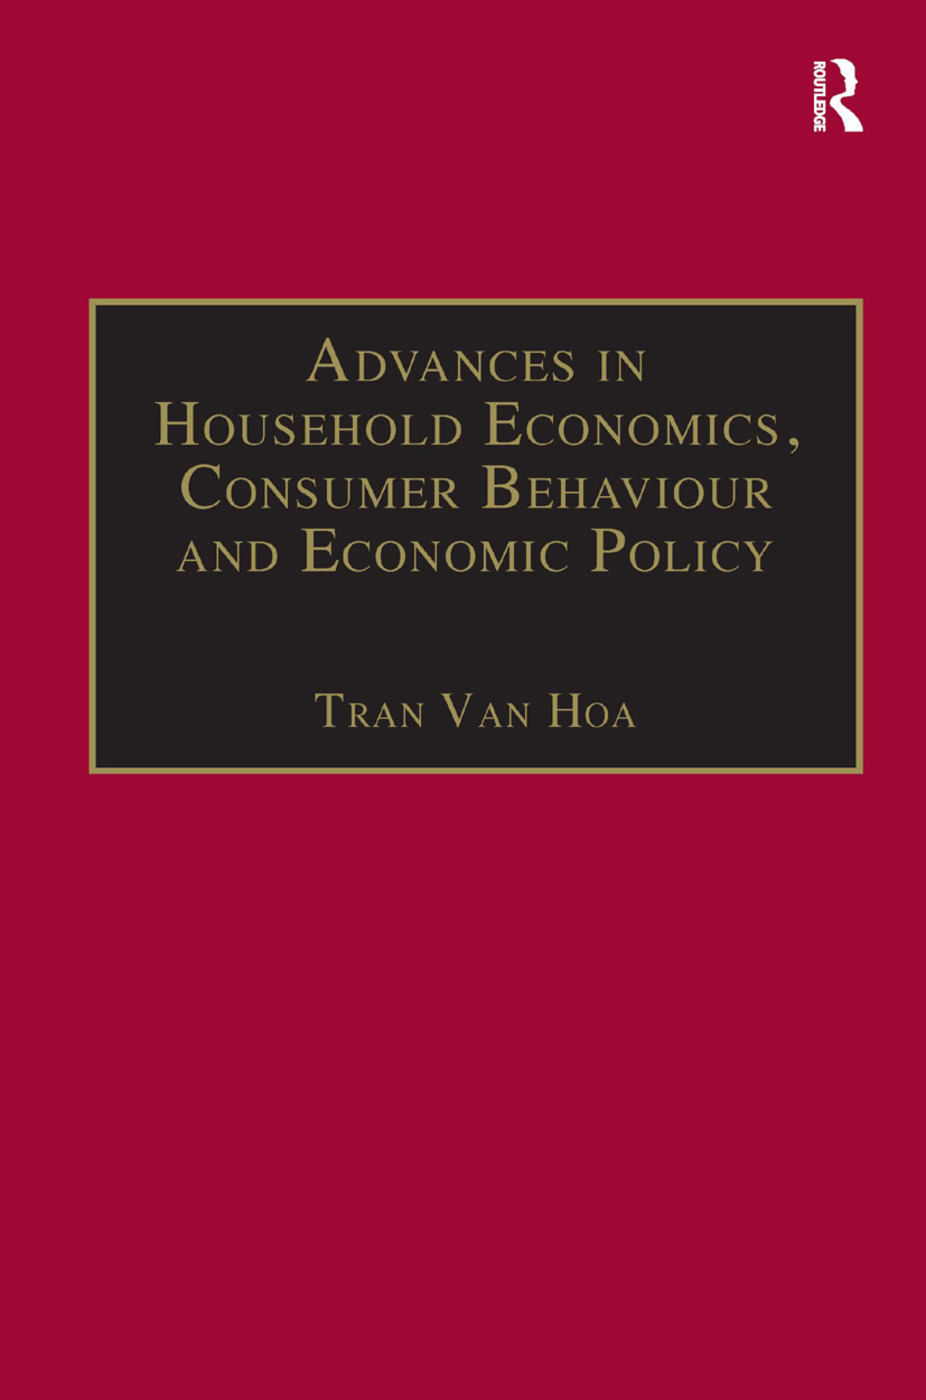 Advances in Household Economics, Consumer Behaviour and Economic Policy: 1st Edition (Hardback) book cover